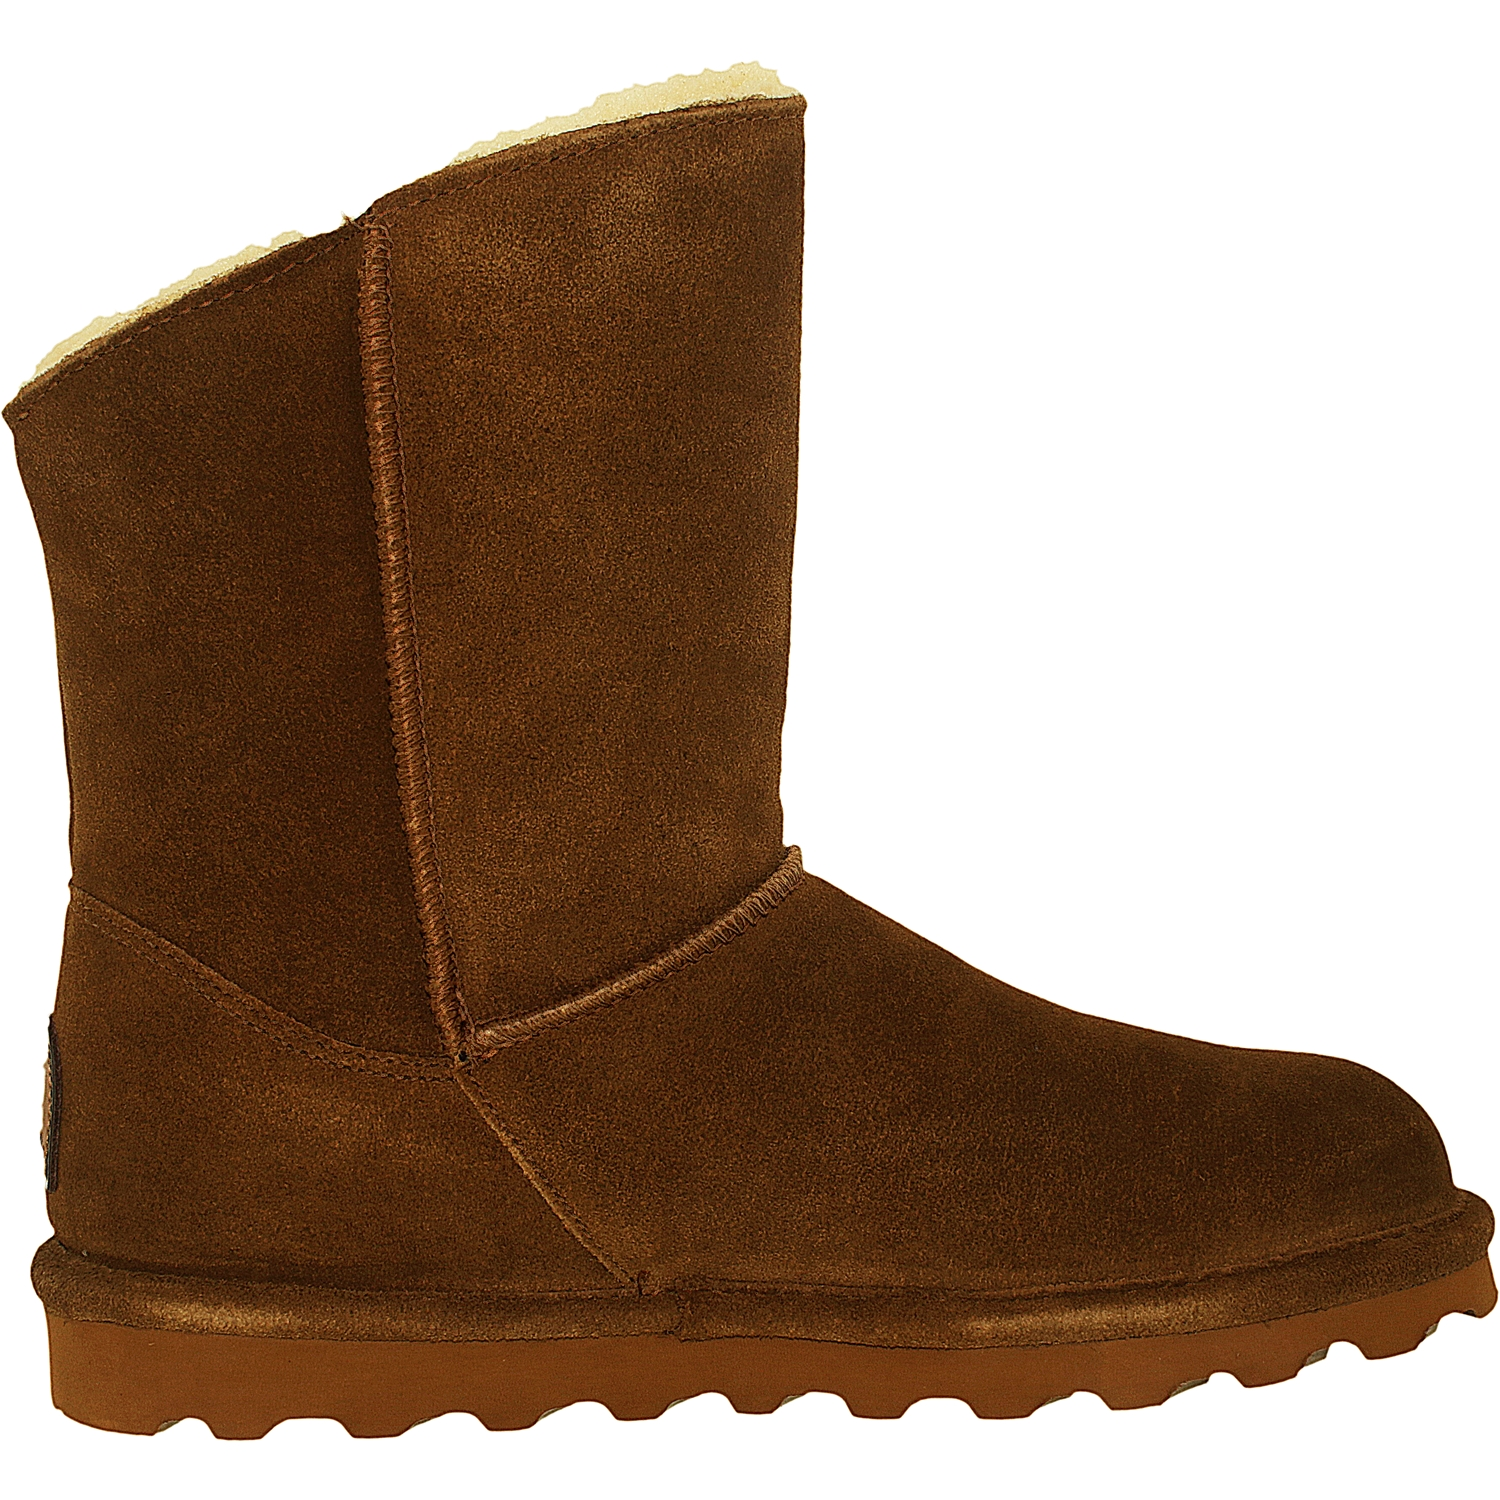 Footaction For Sale Clearance Extremely Womens Mimi Ankle Boots Bearpaw Nice Cheap Sale Manchester Great Sale Release Dates For Sale joWnZf